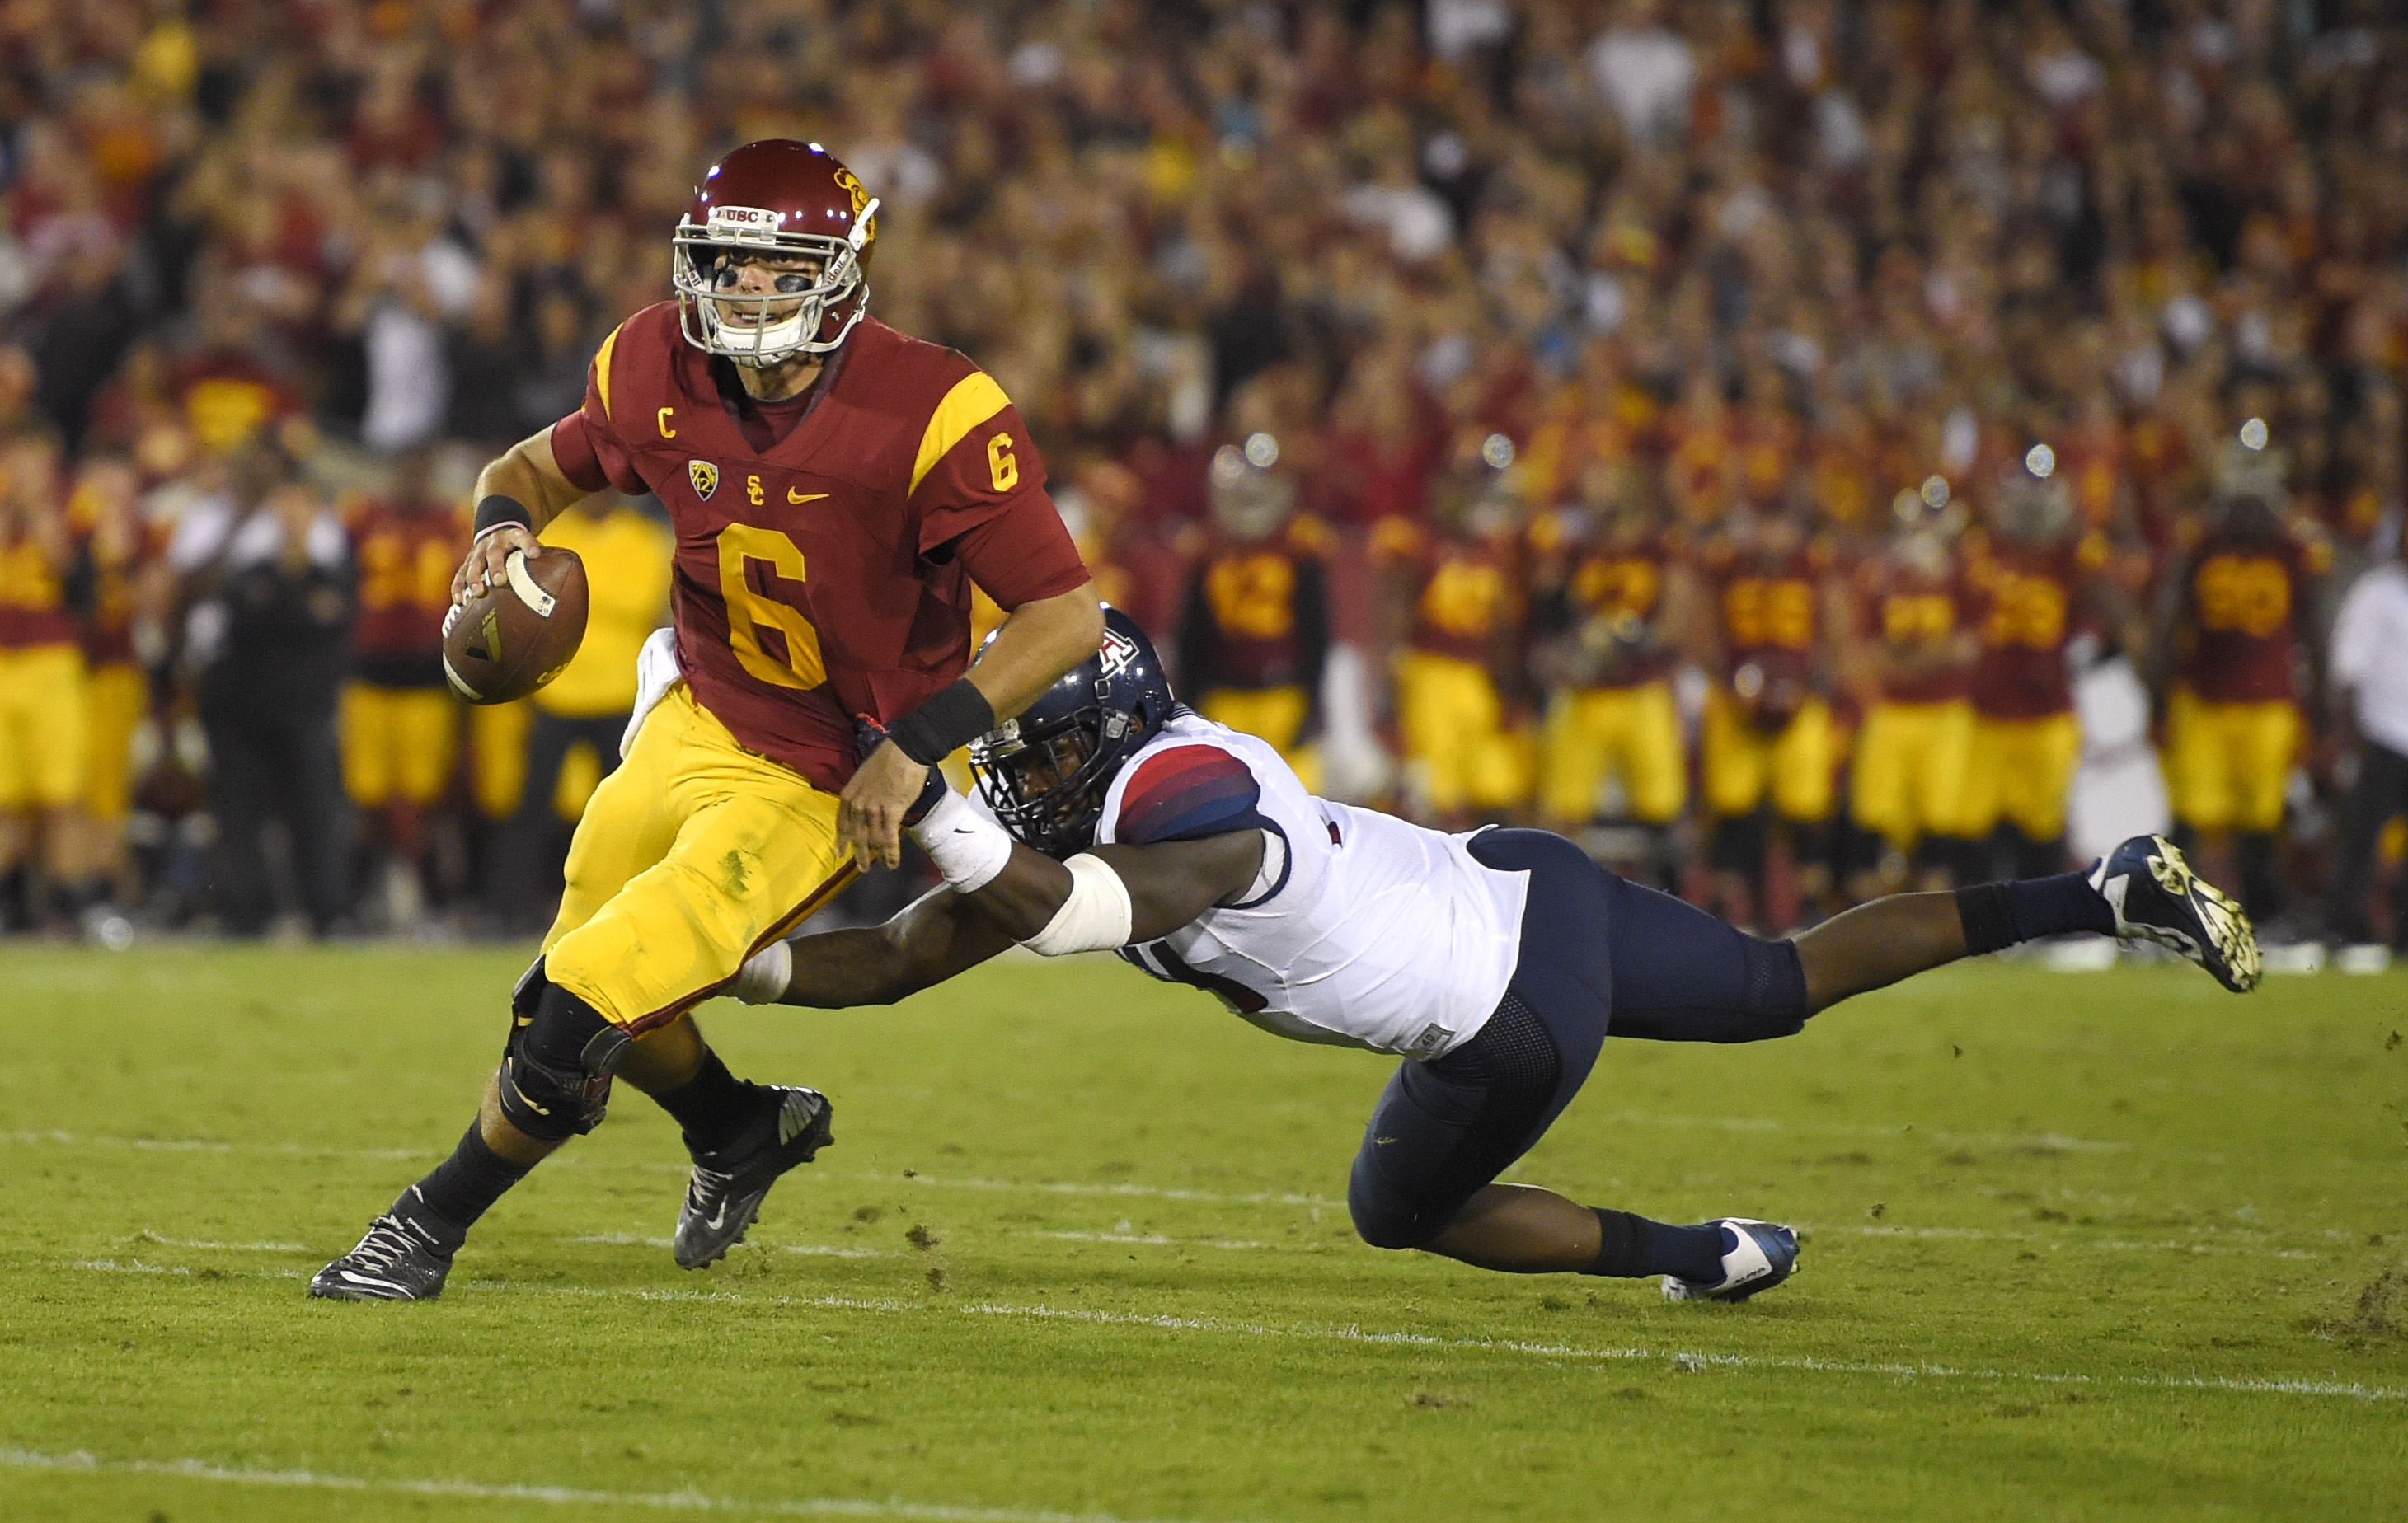 Southern California quarterback Cody Kessler, left, escapes the grasp of Arizona safety Paul Magloire Jr. during the first half of an NCAA college football game, Saturday, Nov. 7, 2015, in Los Angeles. (AP Photo/Mark J. Terrill)